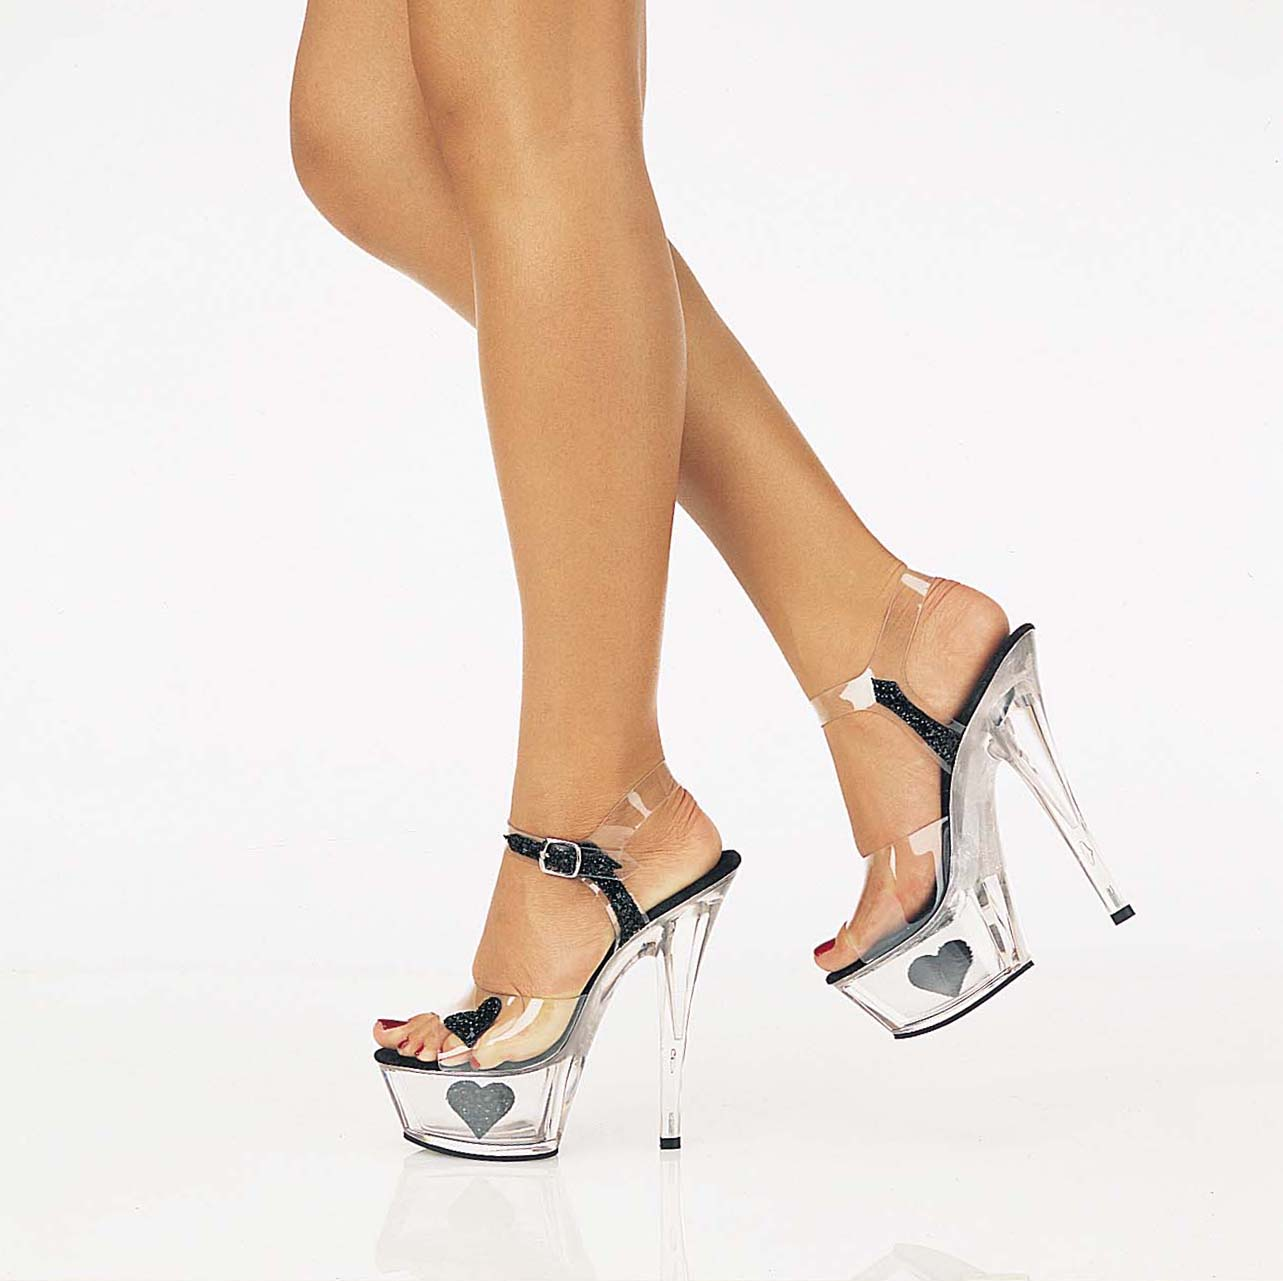 Ladies high heel shoes pictures Orient Visual - Official Site